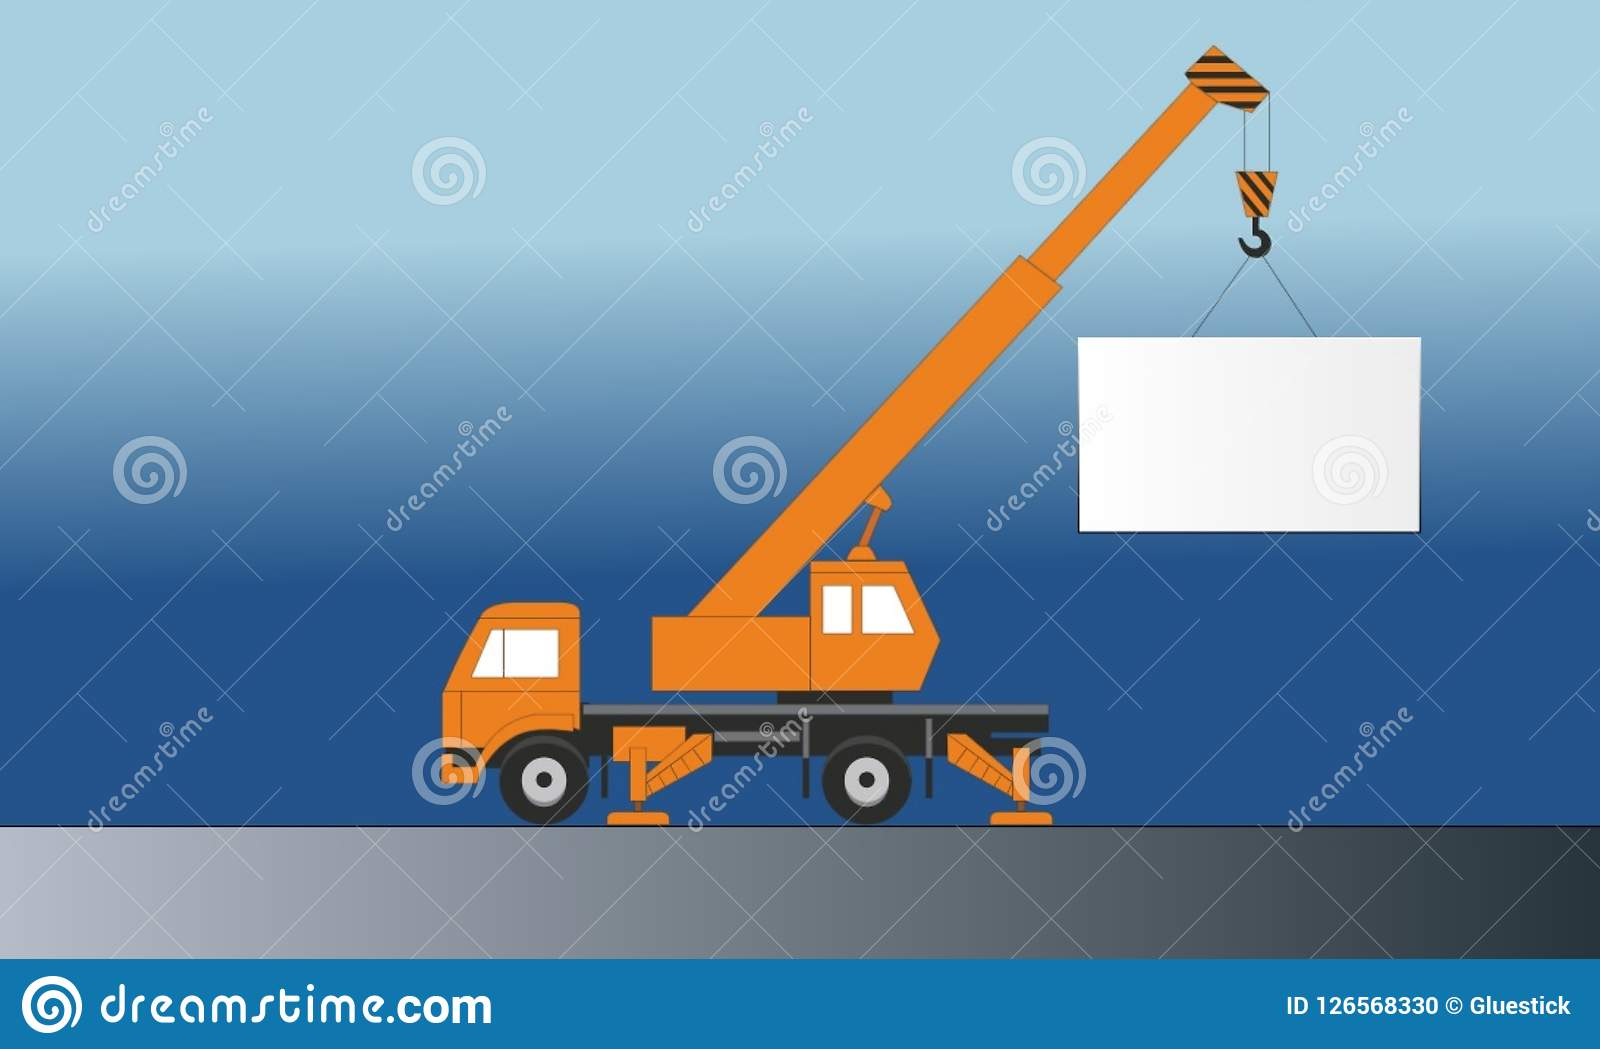 Construction Equipment Banners Baby Tumblr Purple Banners